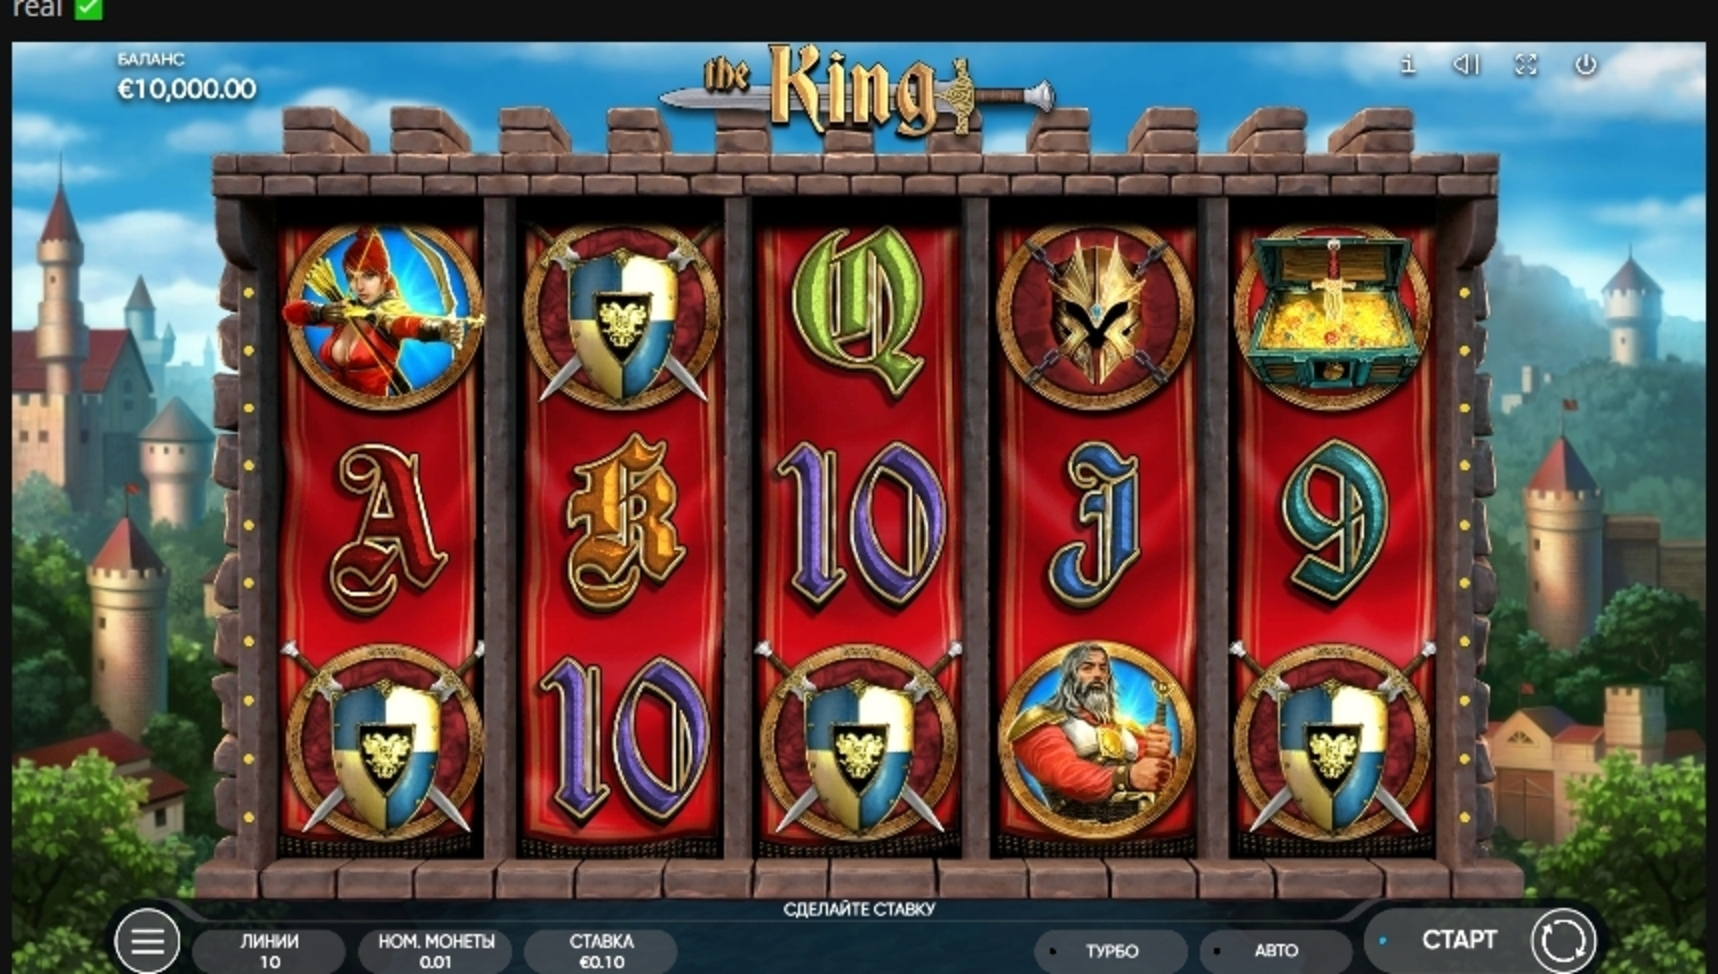 Reels in The King (Endorphina) Slot Game by Endorphina